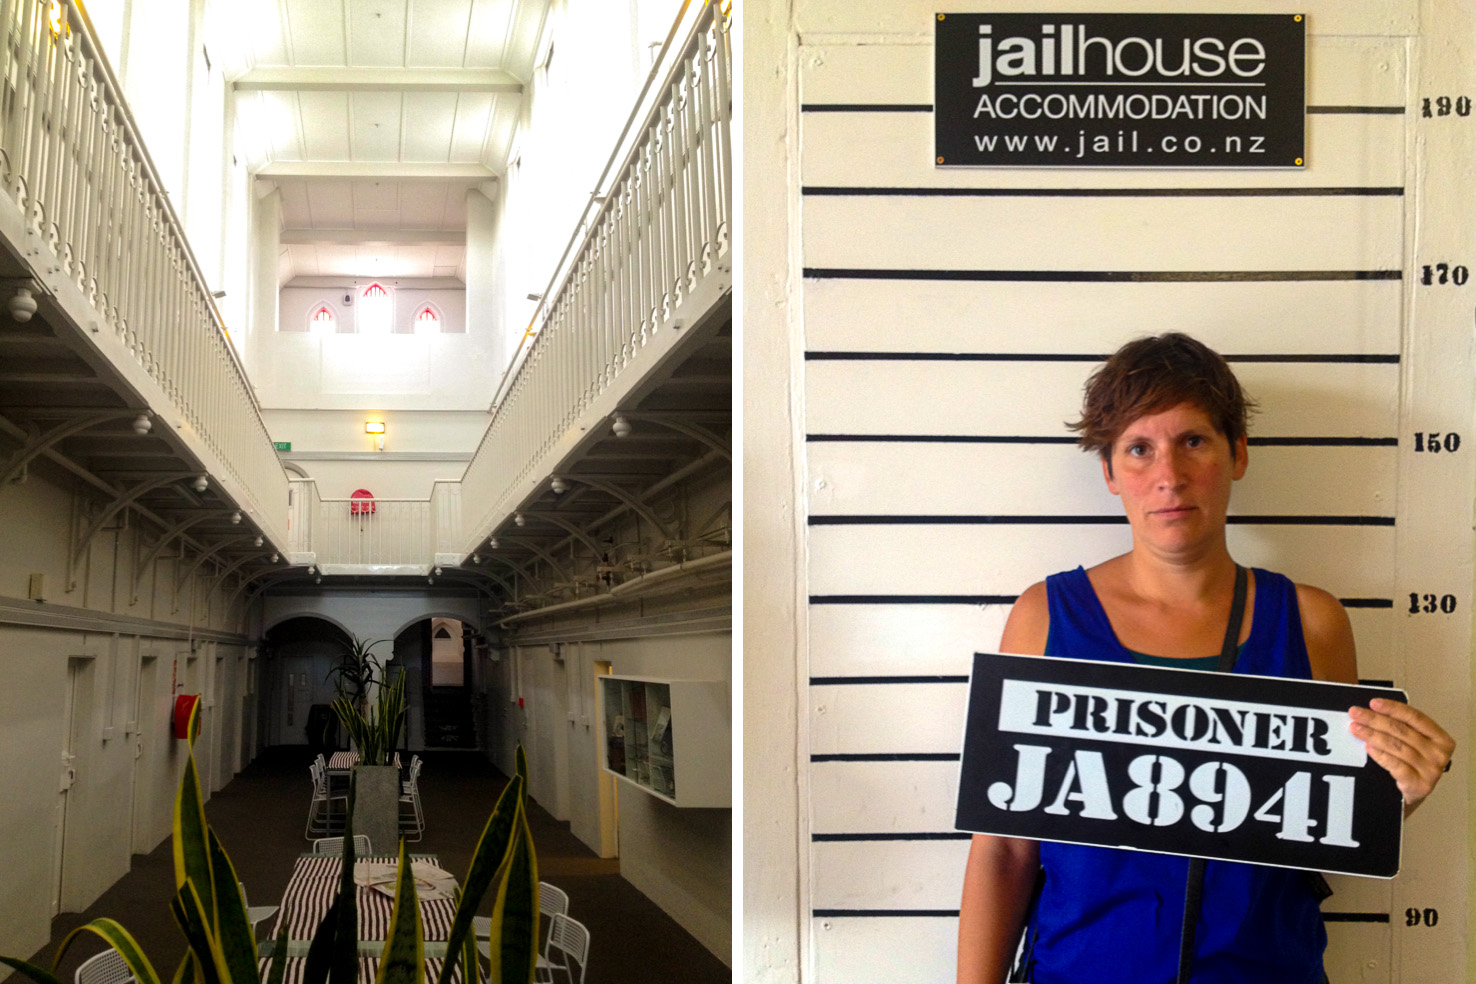 Jailhouse Accomodation